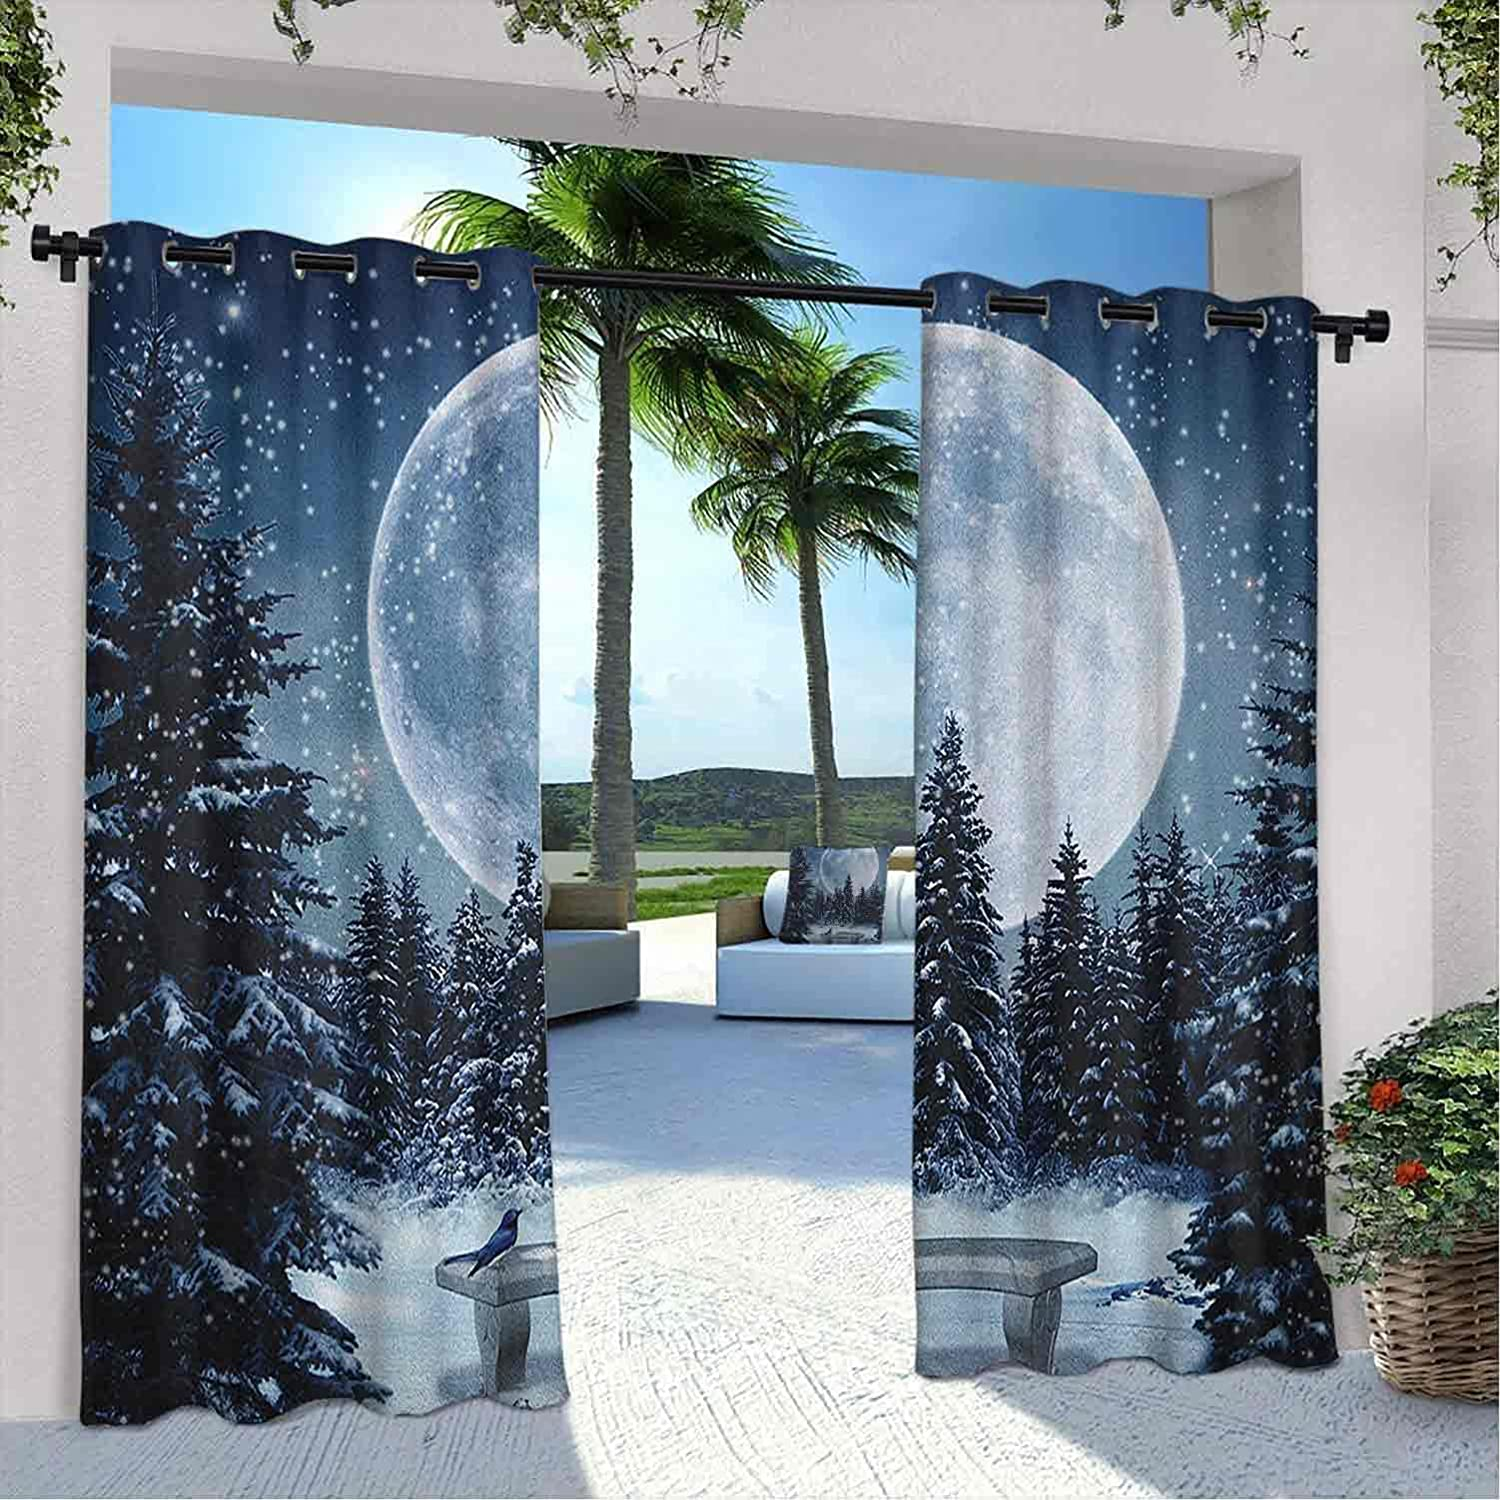 Printed Outdoor Winter Curtain Dreamy Big Long Beach Mall Night F Clearance SALE! Limited time! a with